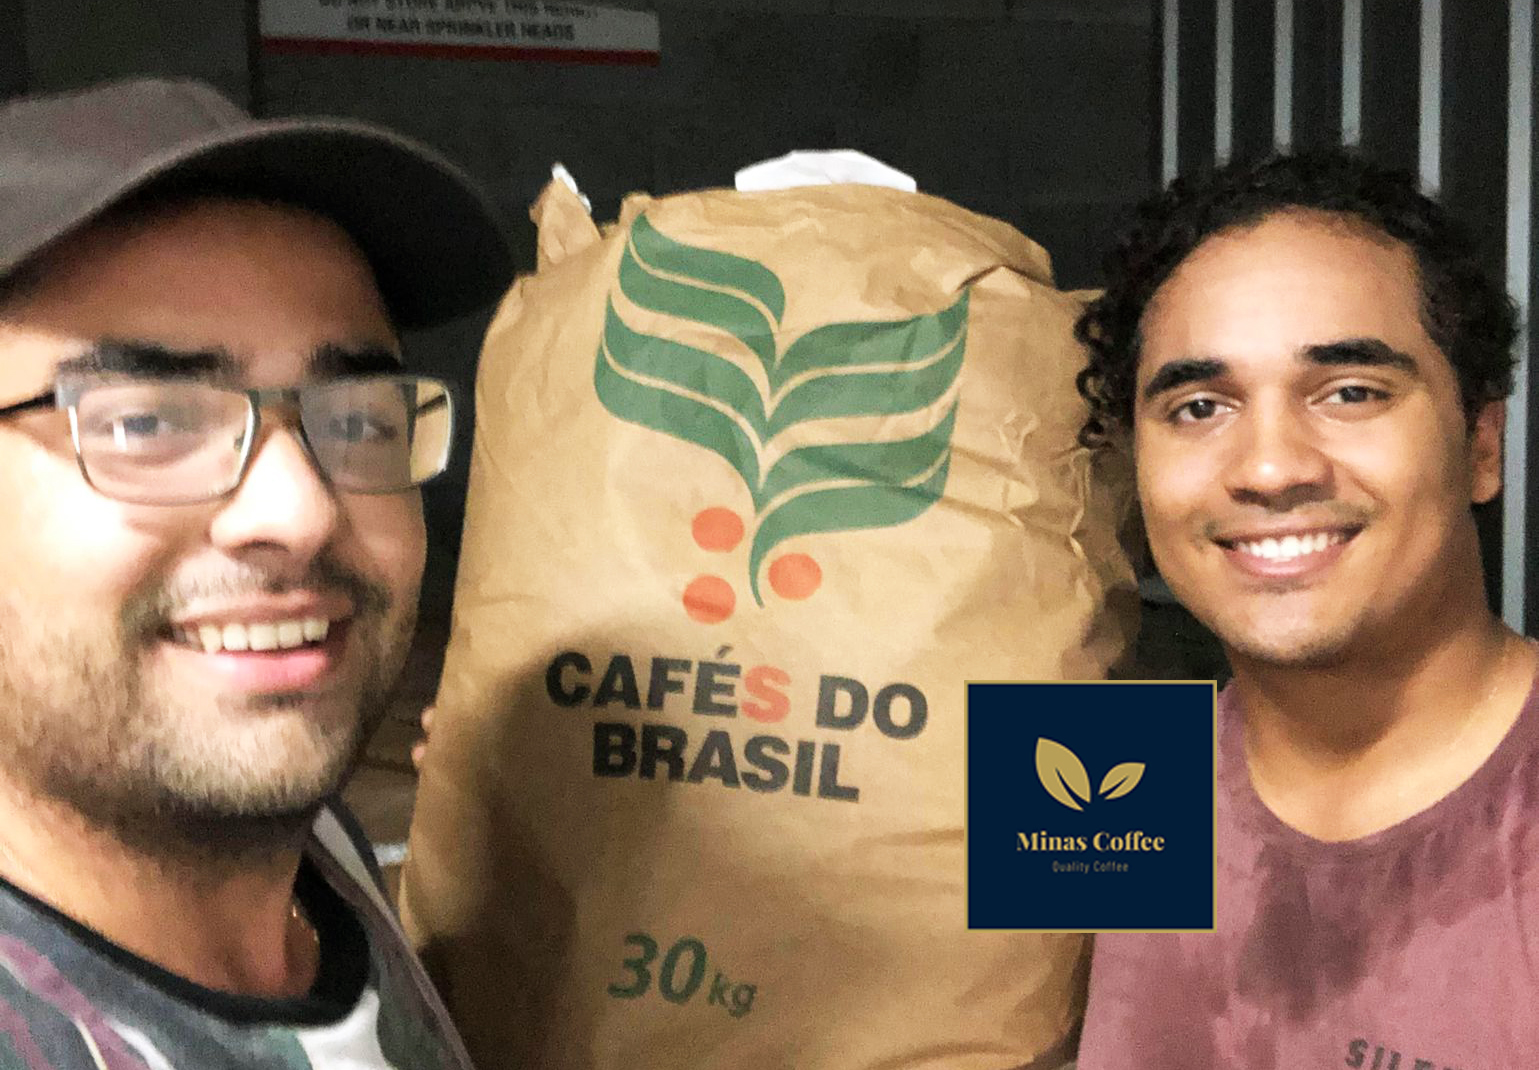 Brothers Heitor and Hector Hilberto aim to give supporters a taste of Brasil